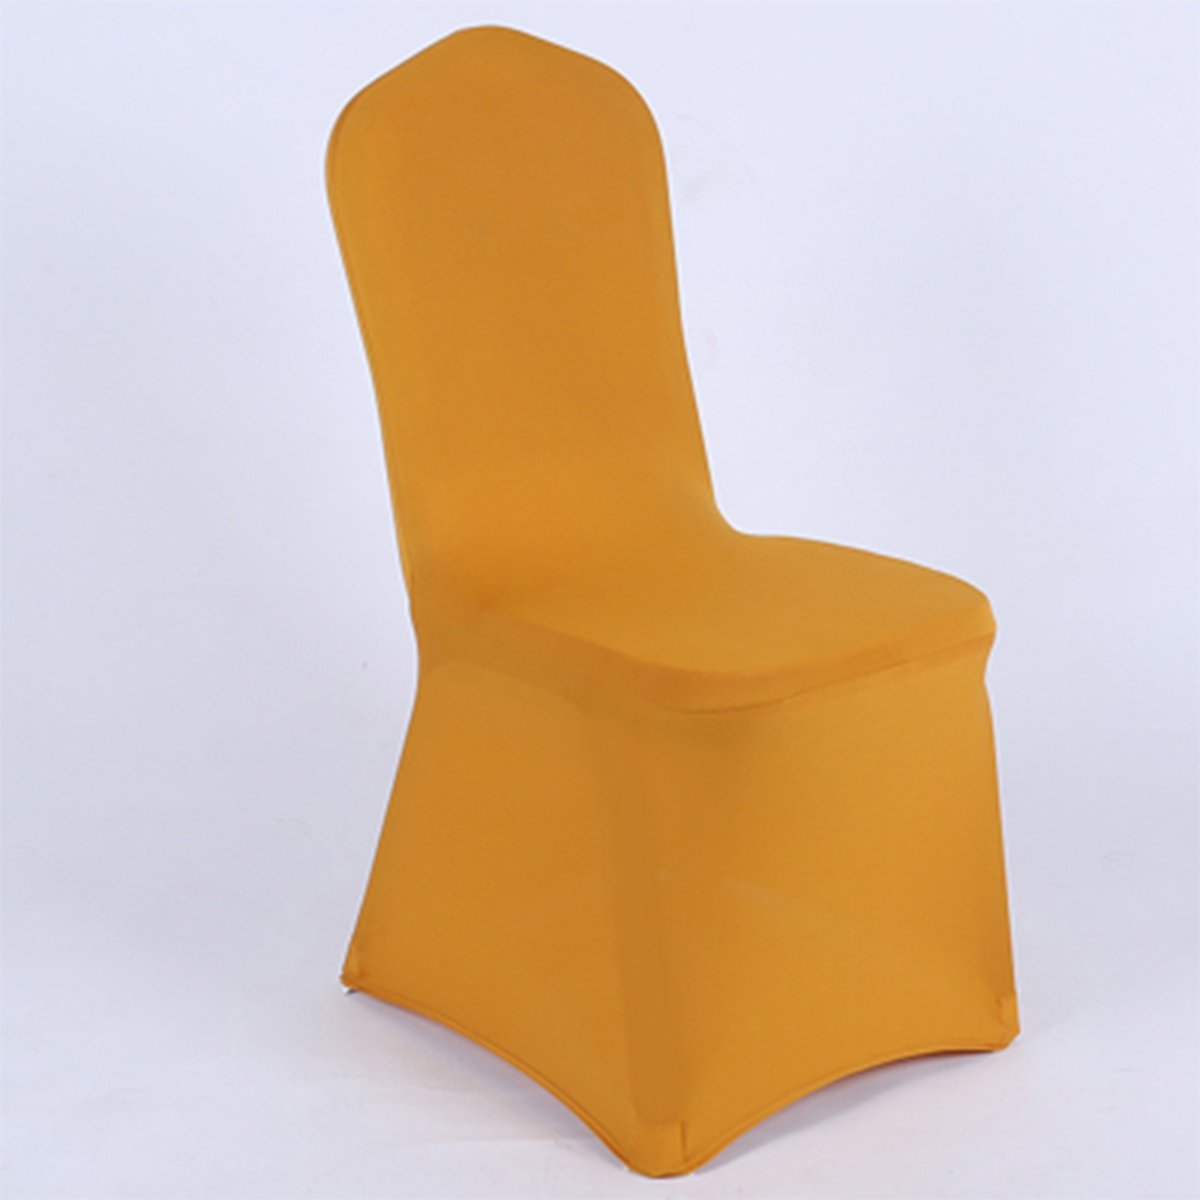 100pcs Universal Spandex Chair Cover Spandex for Wedding Supply Party Banquet Decoration shellyliu